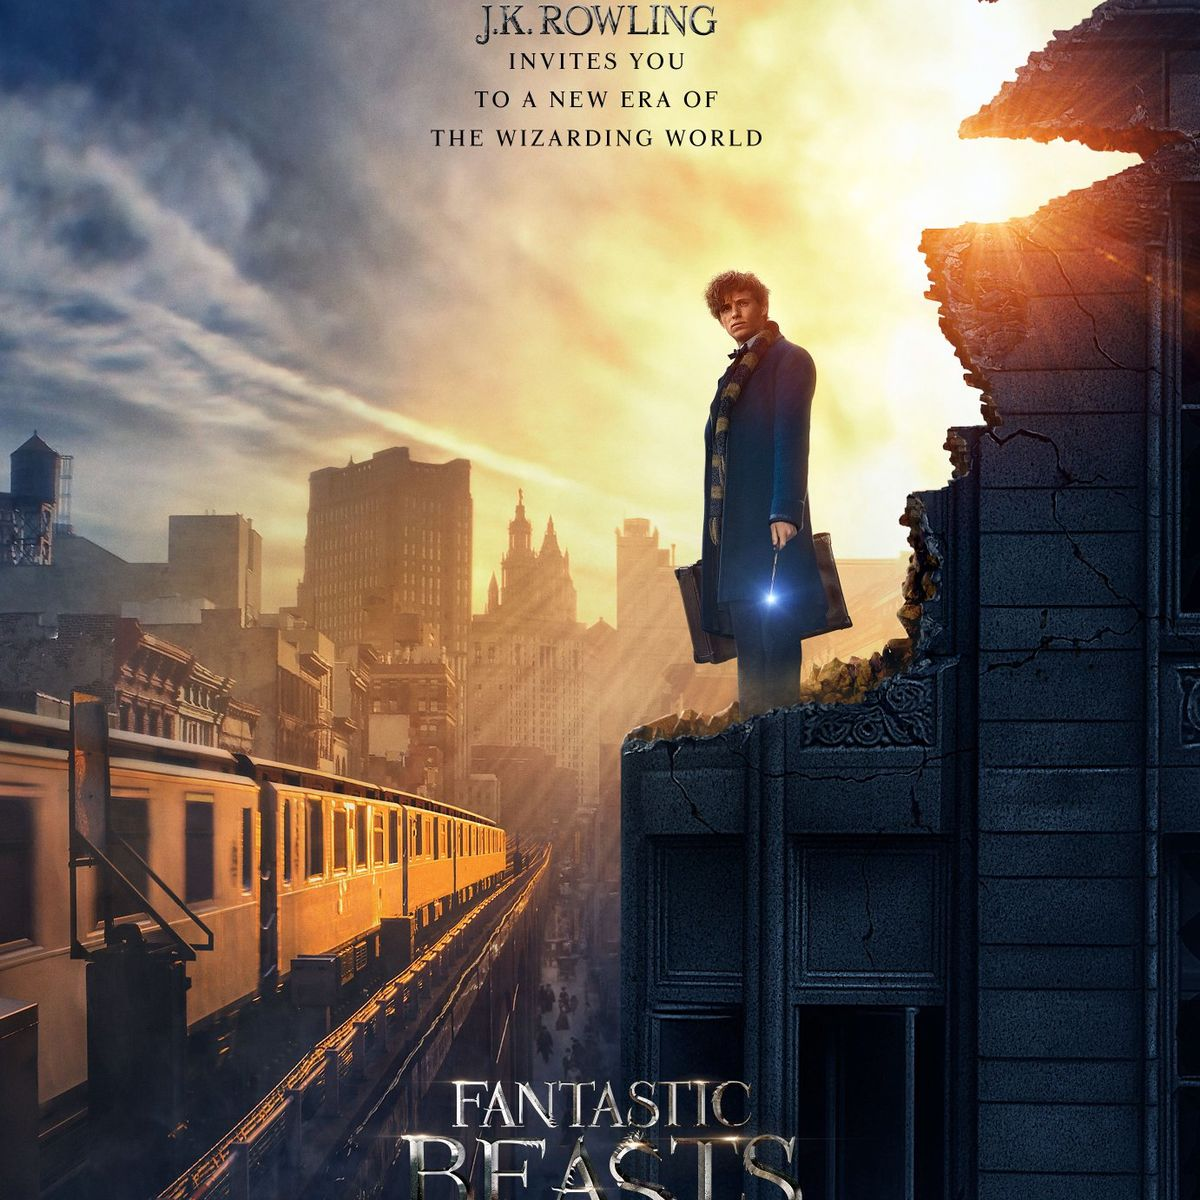 Fantastic-Beasts-and-Where-to-Find-Them-poster_0.jpg